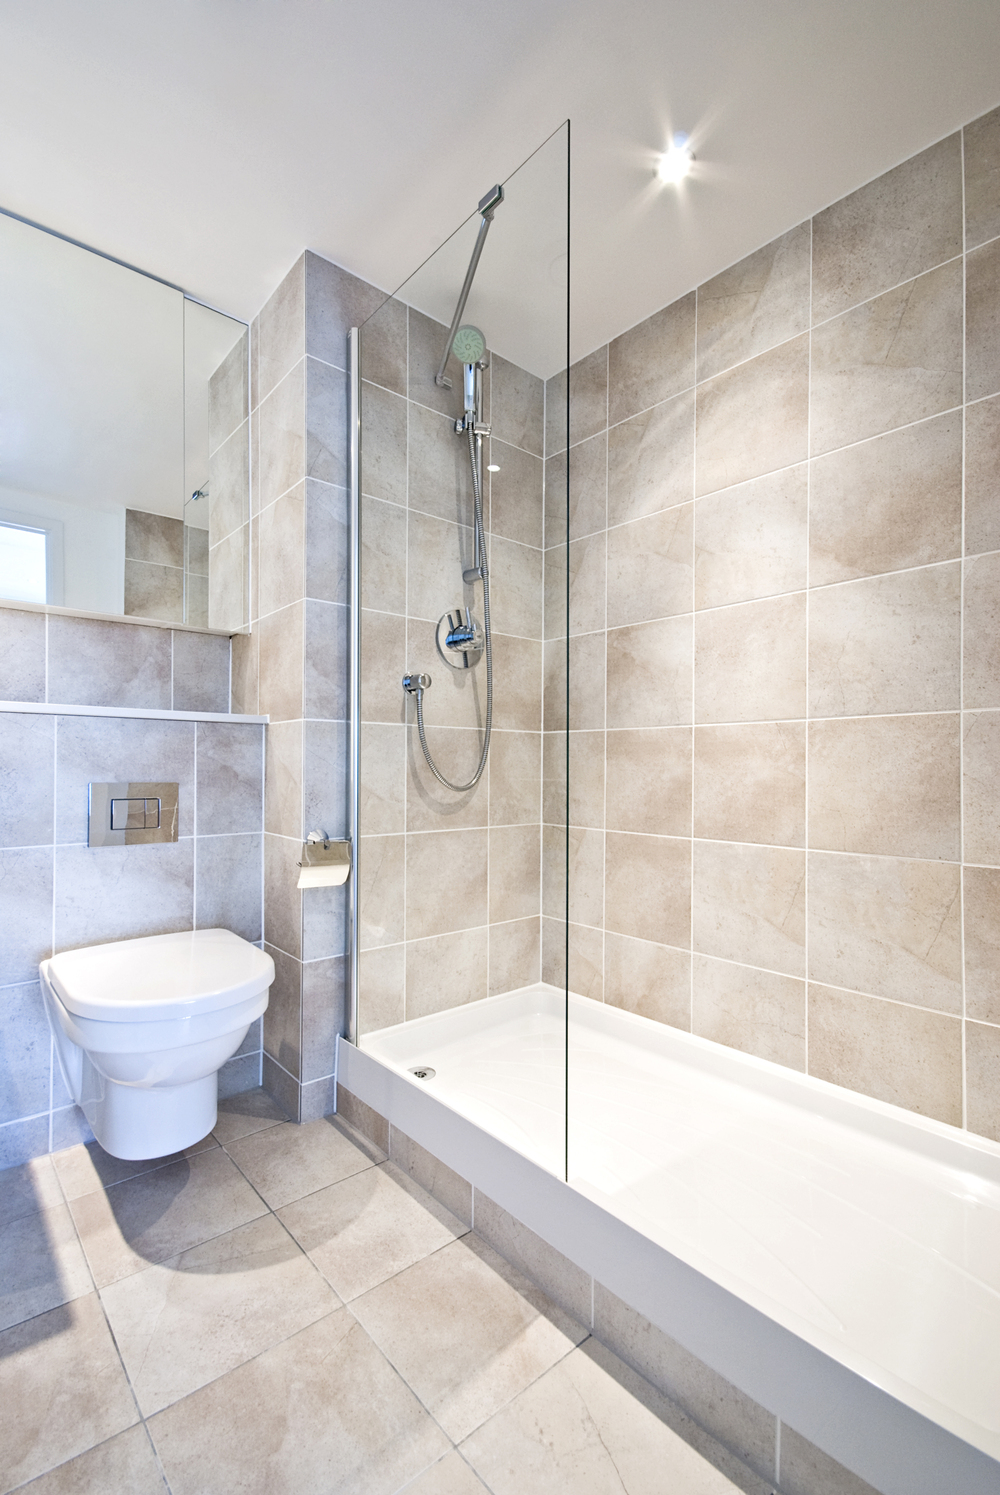 Ideas for the ensuite